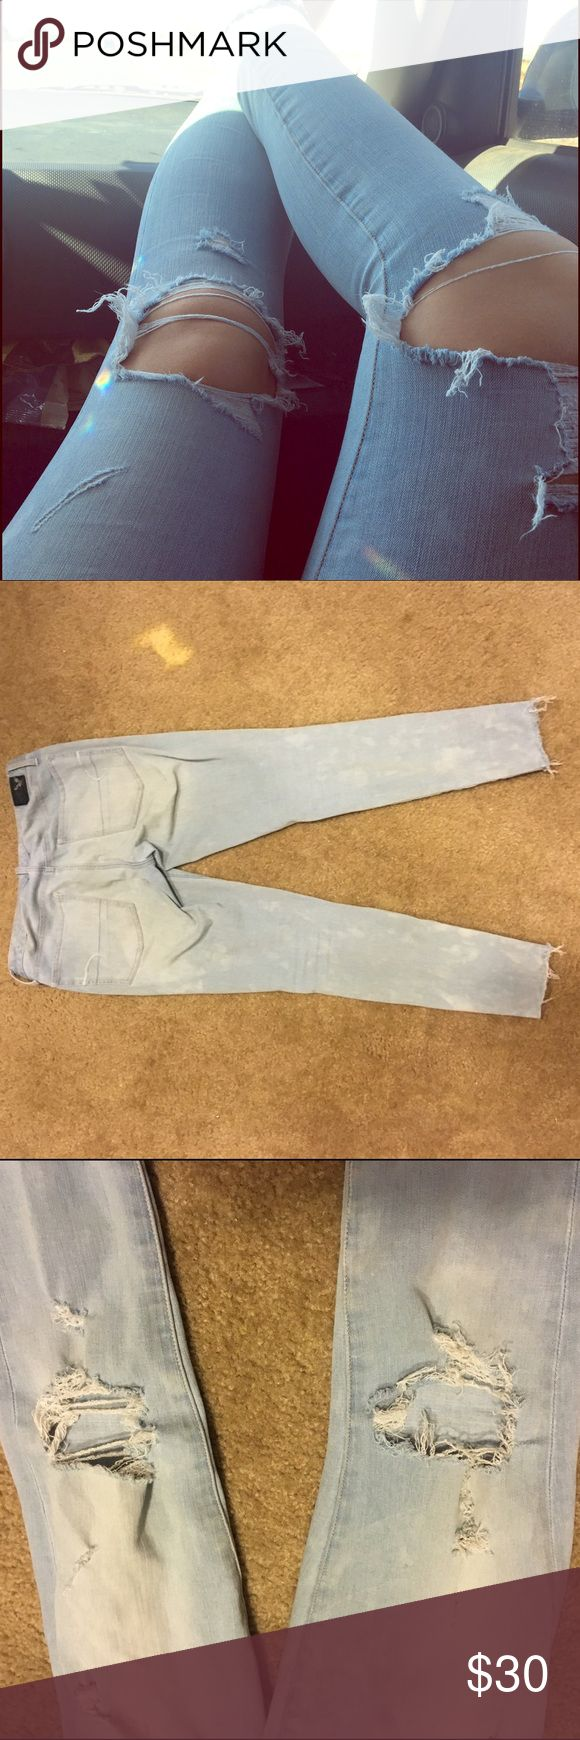 Ae  light wash distressed jeggings 360 super stretch     smoke free home                           worn a few times        great condition American Eagle Outfitters Jeans Skinny